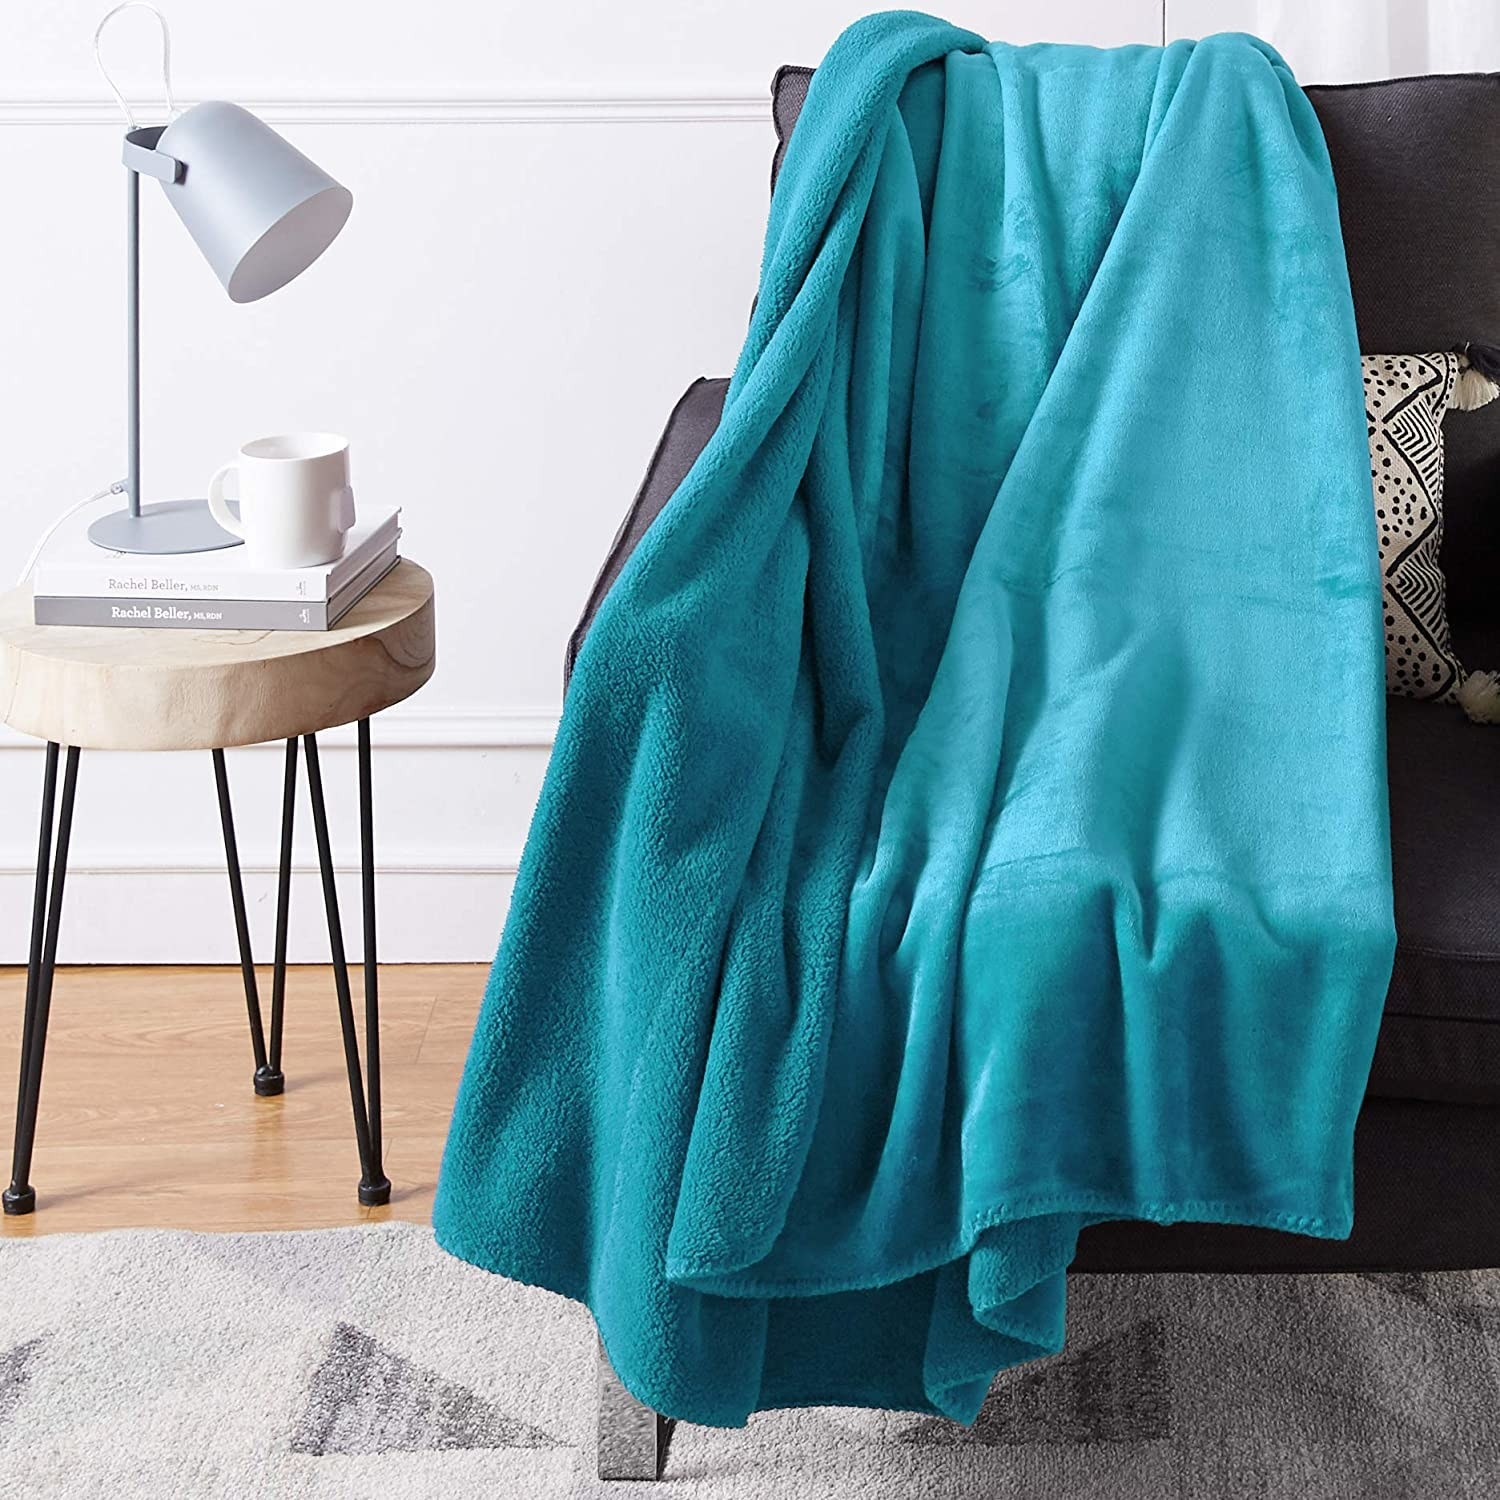 The fuzzy blanket draped artfully over a couch